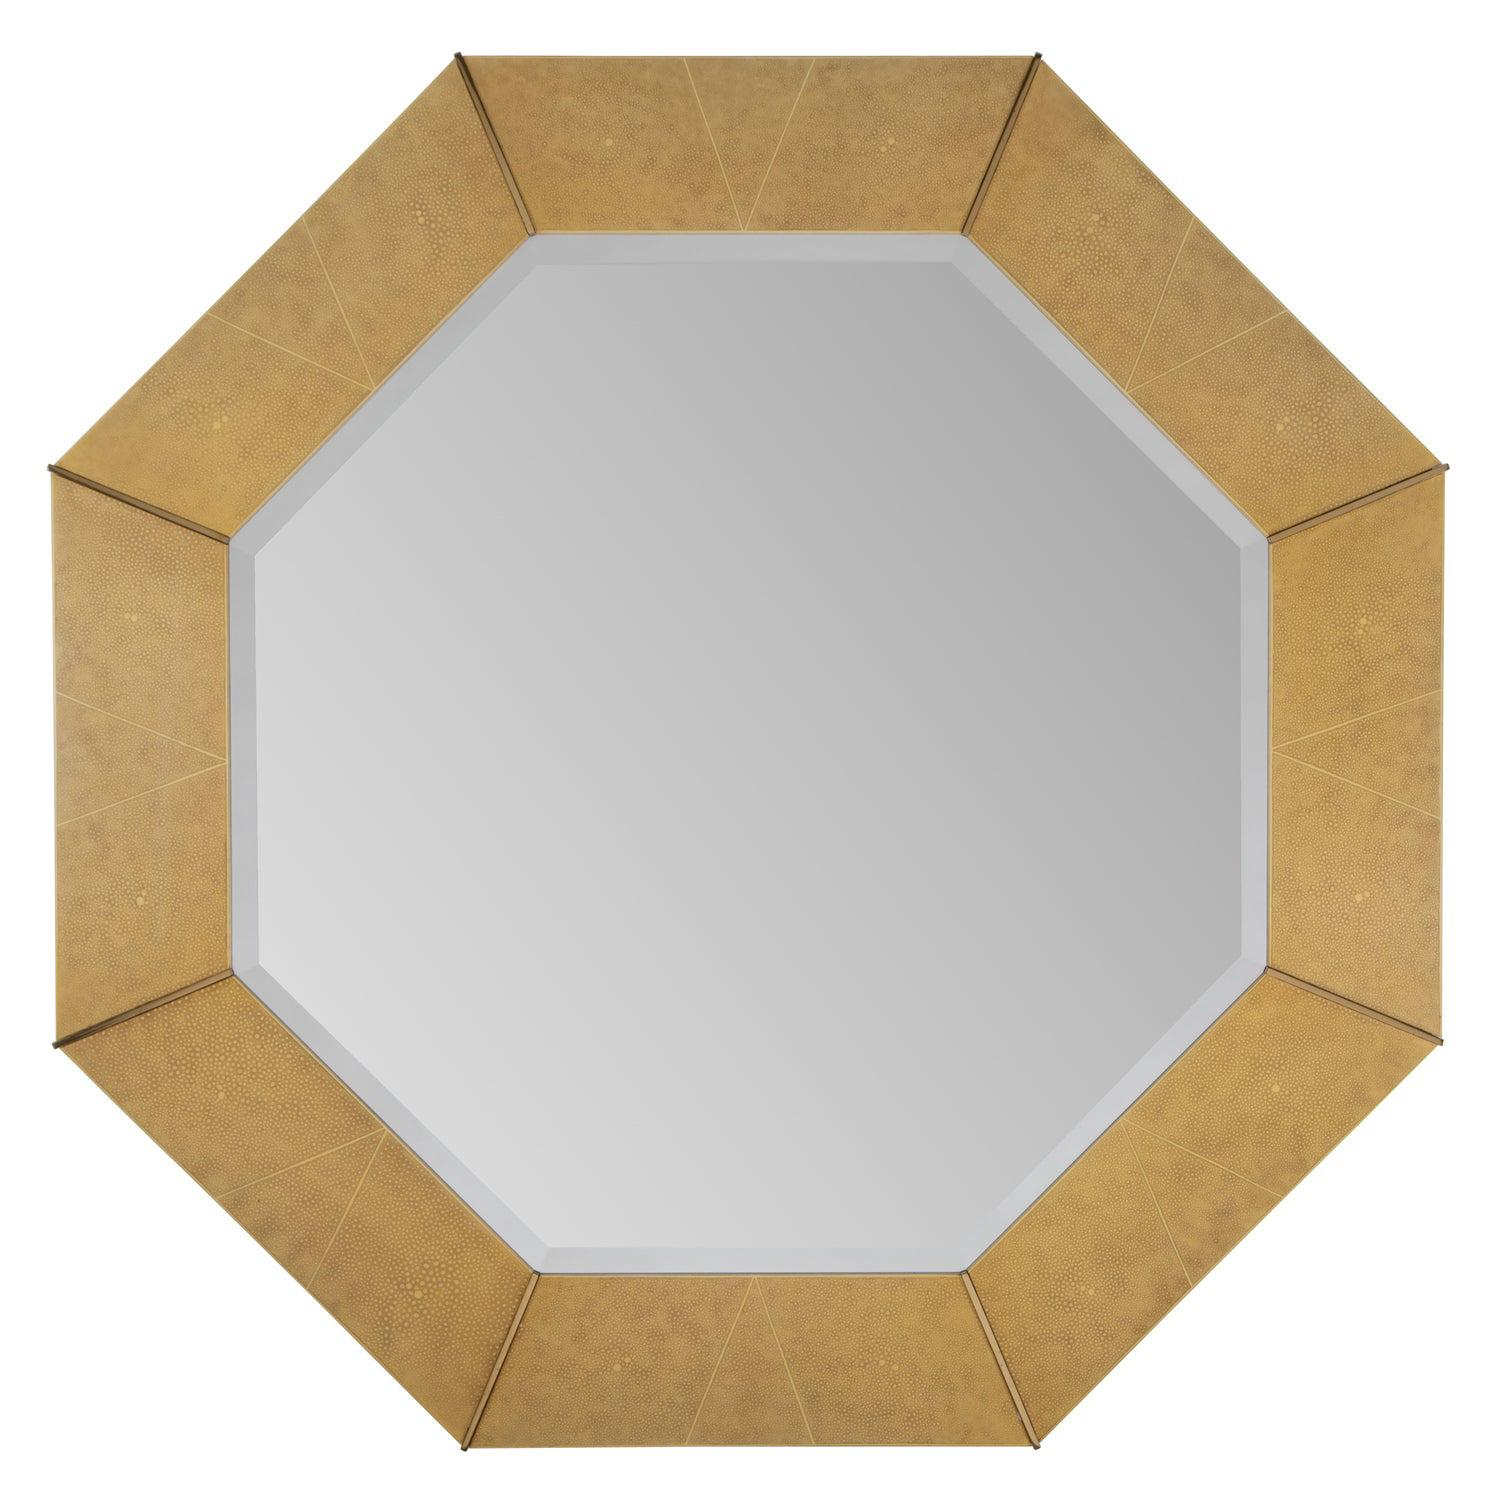 Karl Springer Octagonal Mirror in Shagreen Lacquer with Brass Accents, 1980s